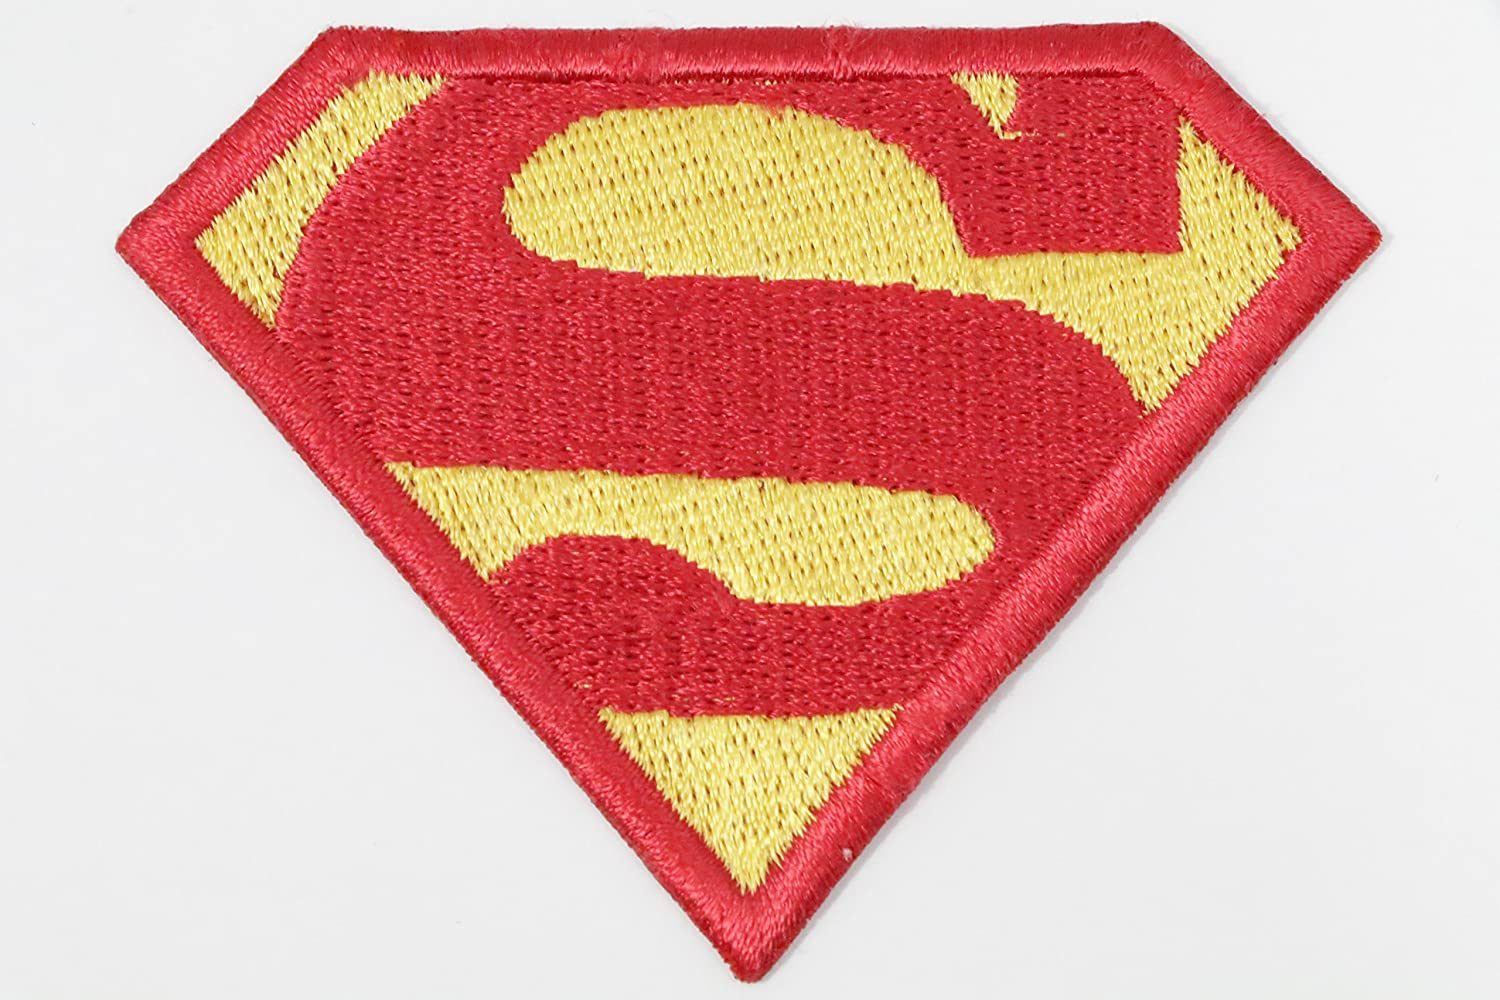 Superman / Superwoman Logos DC comic Super Hero Embroidery iron on / sew on patch (Superman Red (8 cm x 6 cm)): Amazon.co.uk: Kitchen & Home